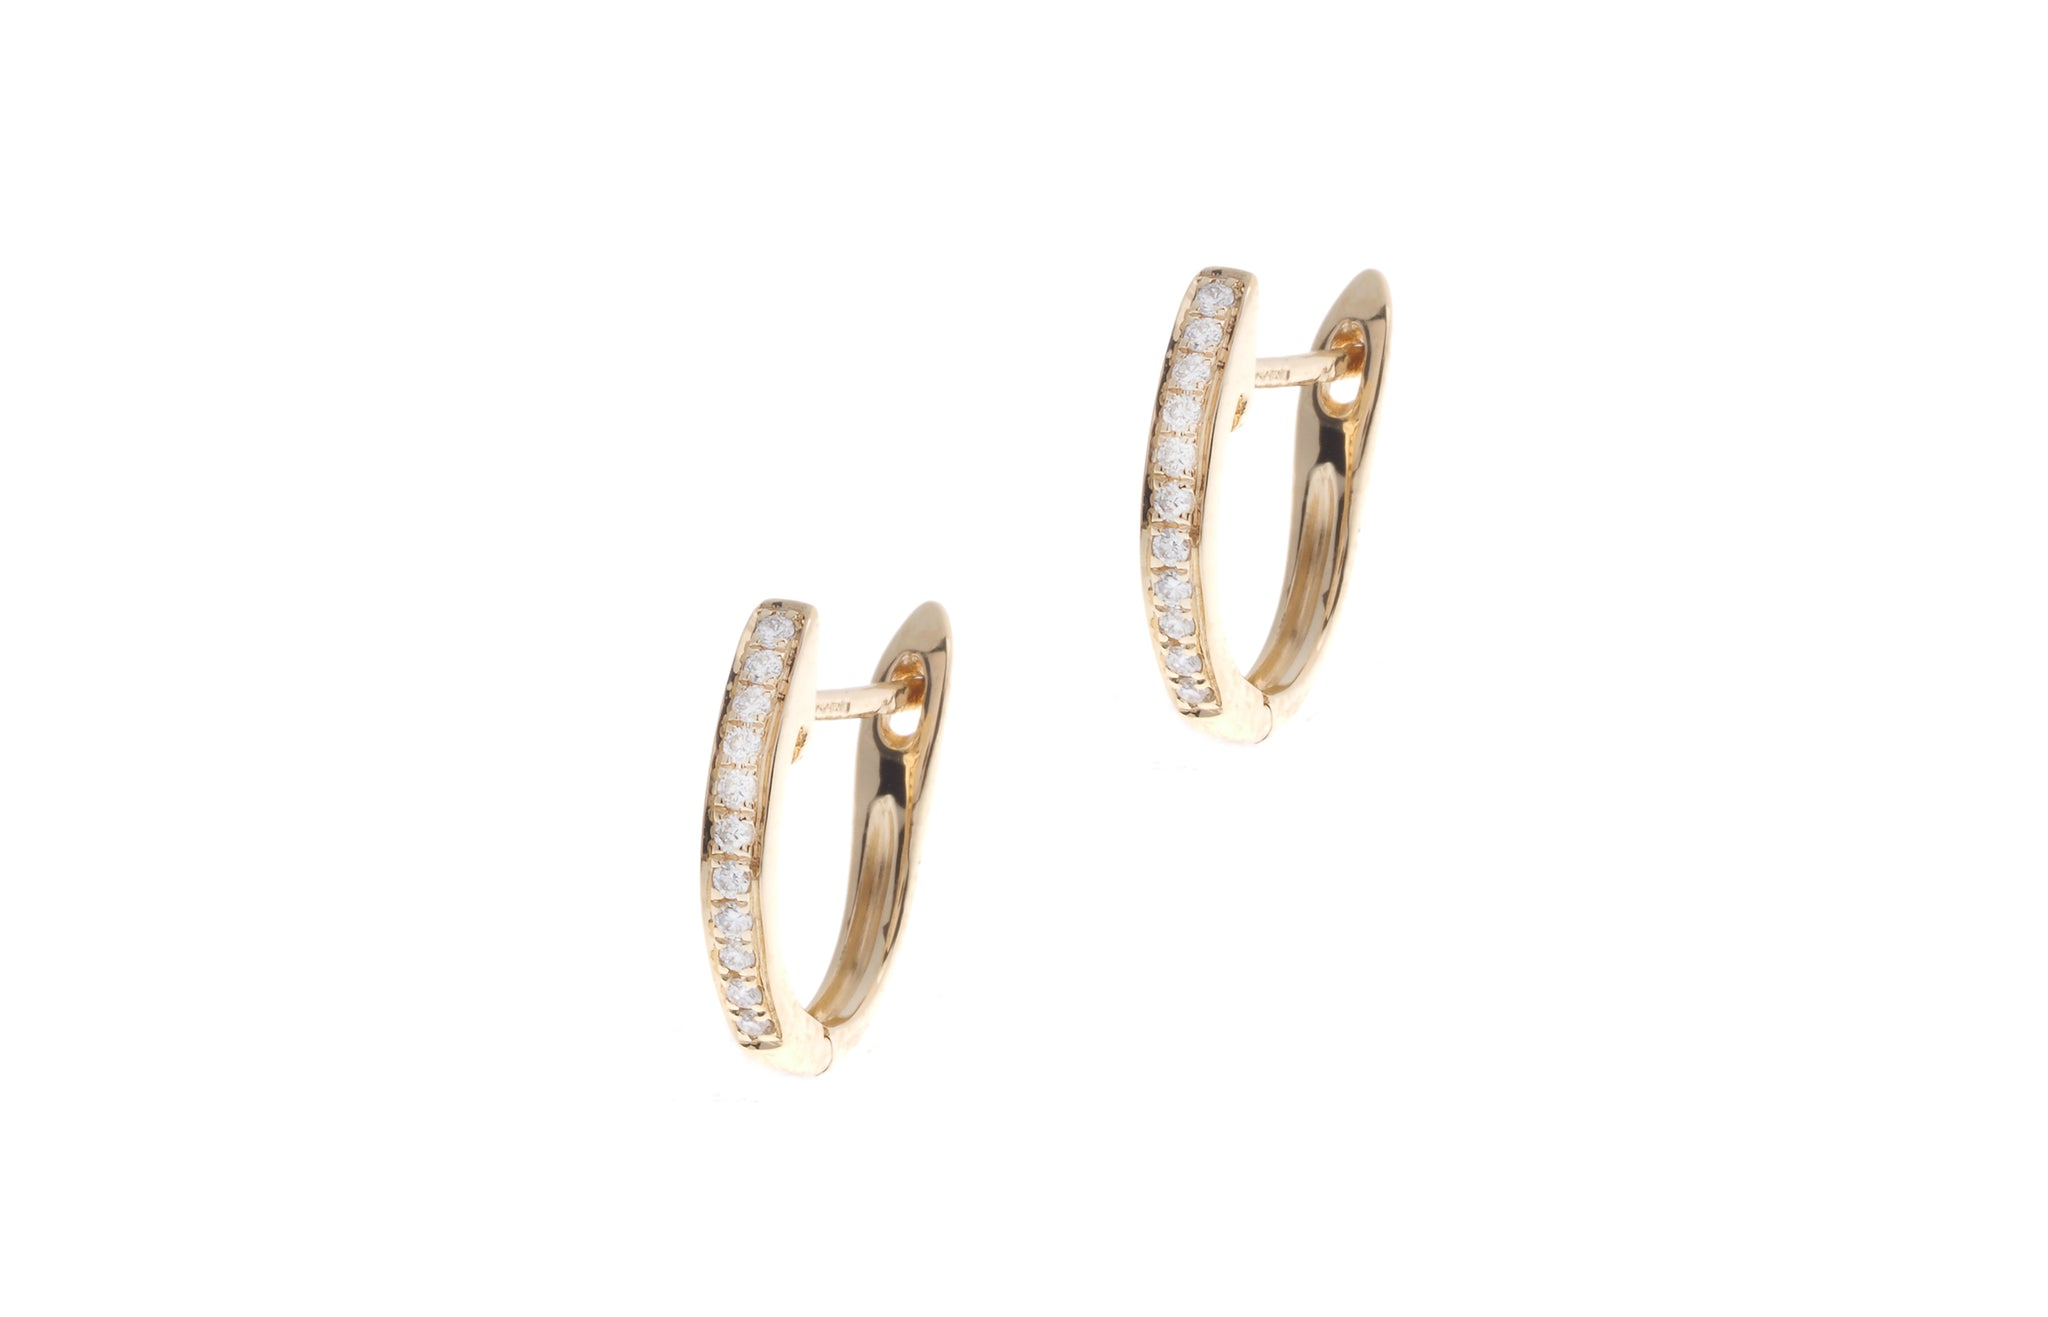 18ct Yellow Gold 0.08ct Diamond Hoop Earrings E30562B-9